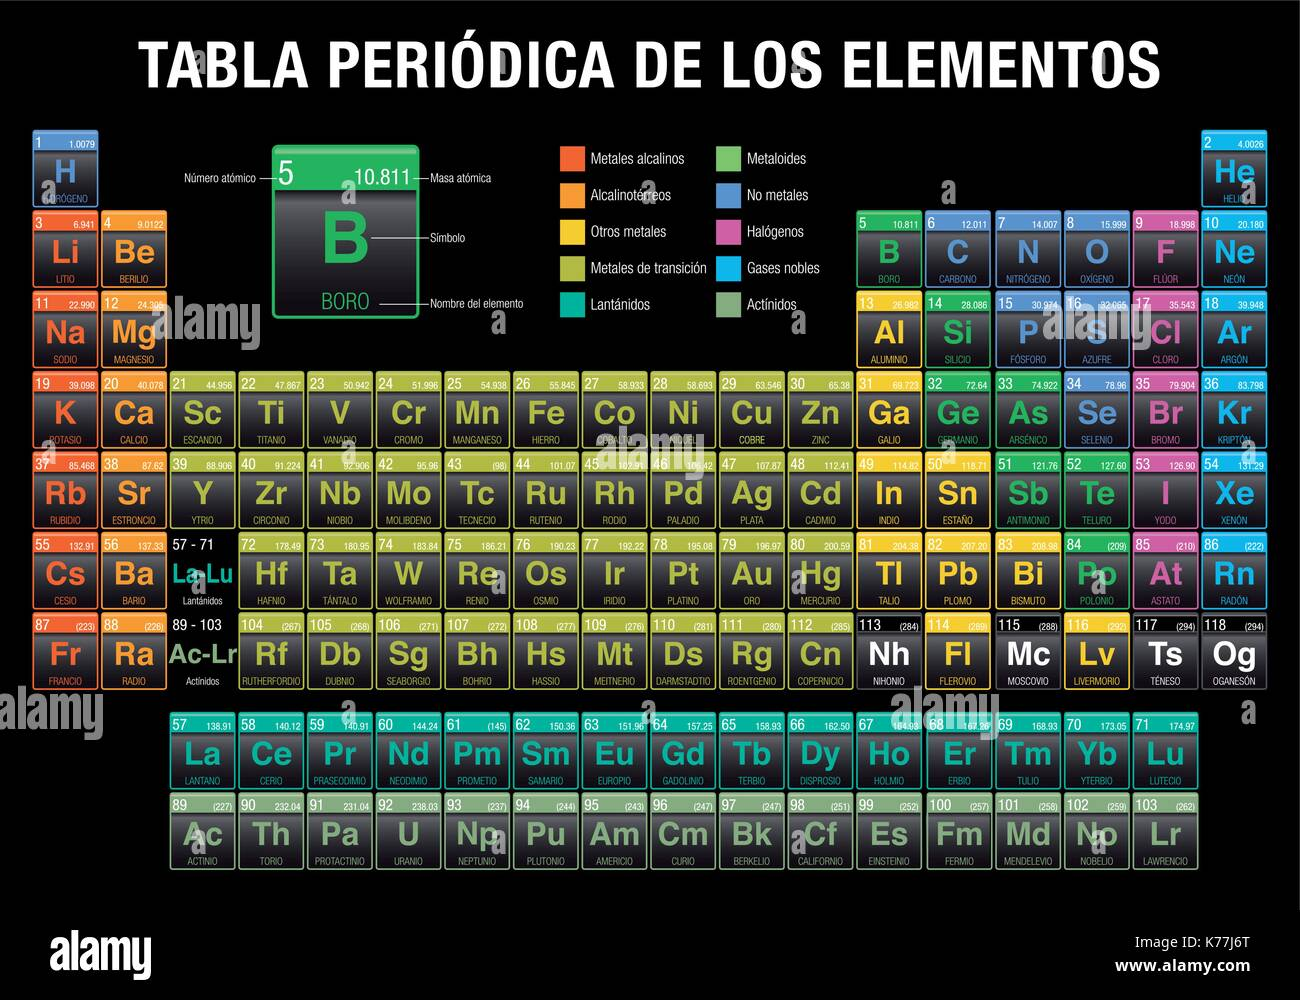 Tabla periodica de los elementos periodic table of elements in tabla periodica de los elementos periodic table of elements in spanish language in black background with the 4 new elements included by the iupac urtaz Choice Image